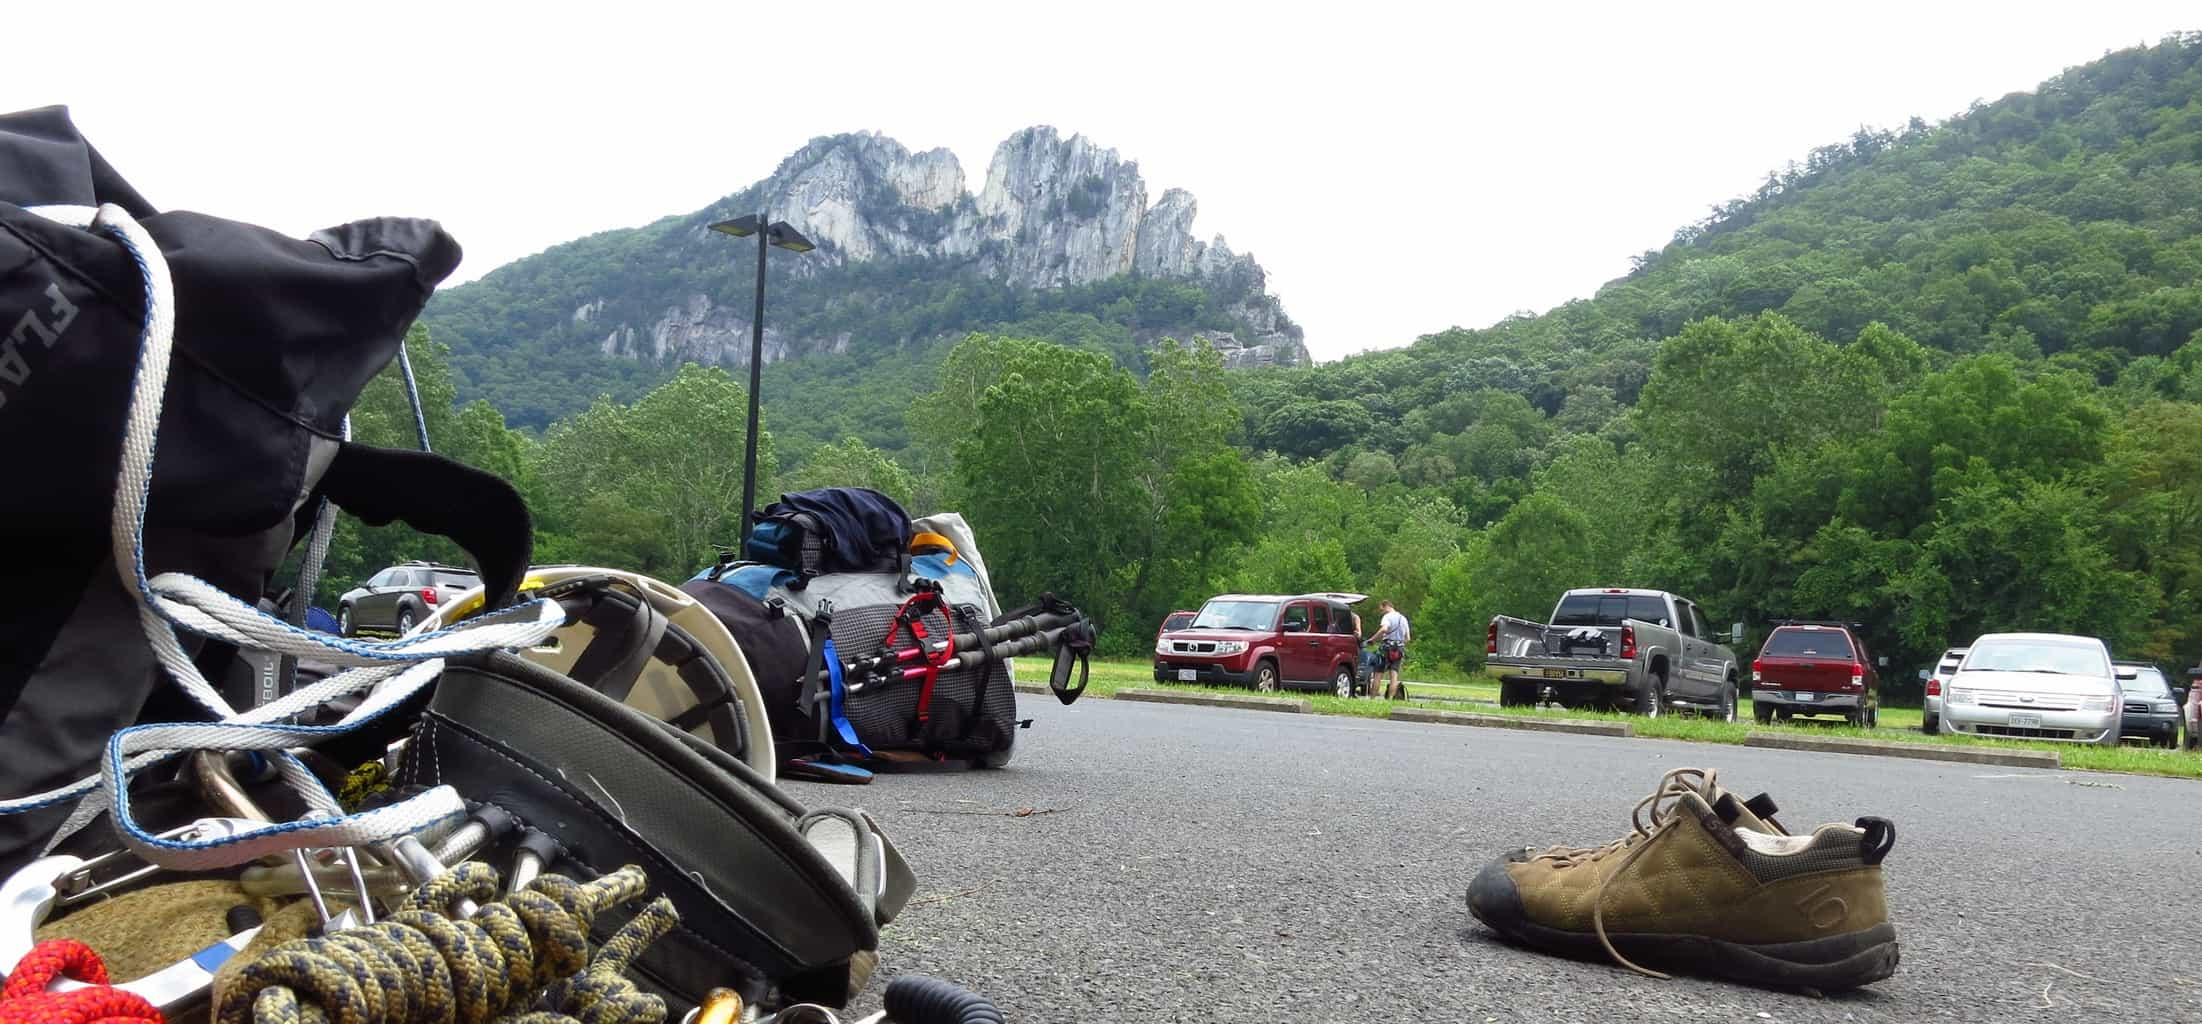 Stormy, Hot, and Humid: Climbing at Seneca Rocks with PATC-MS